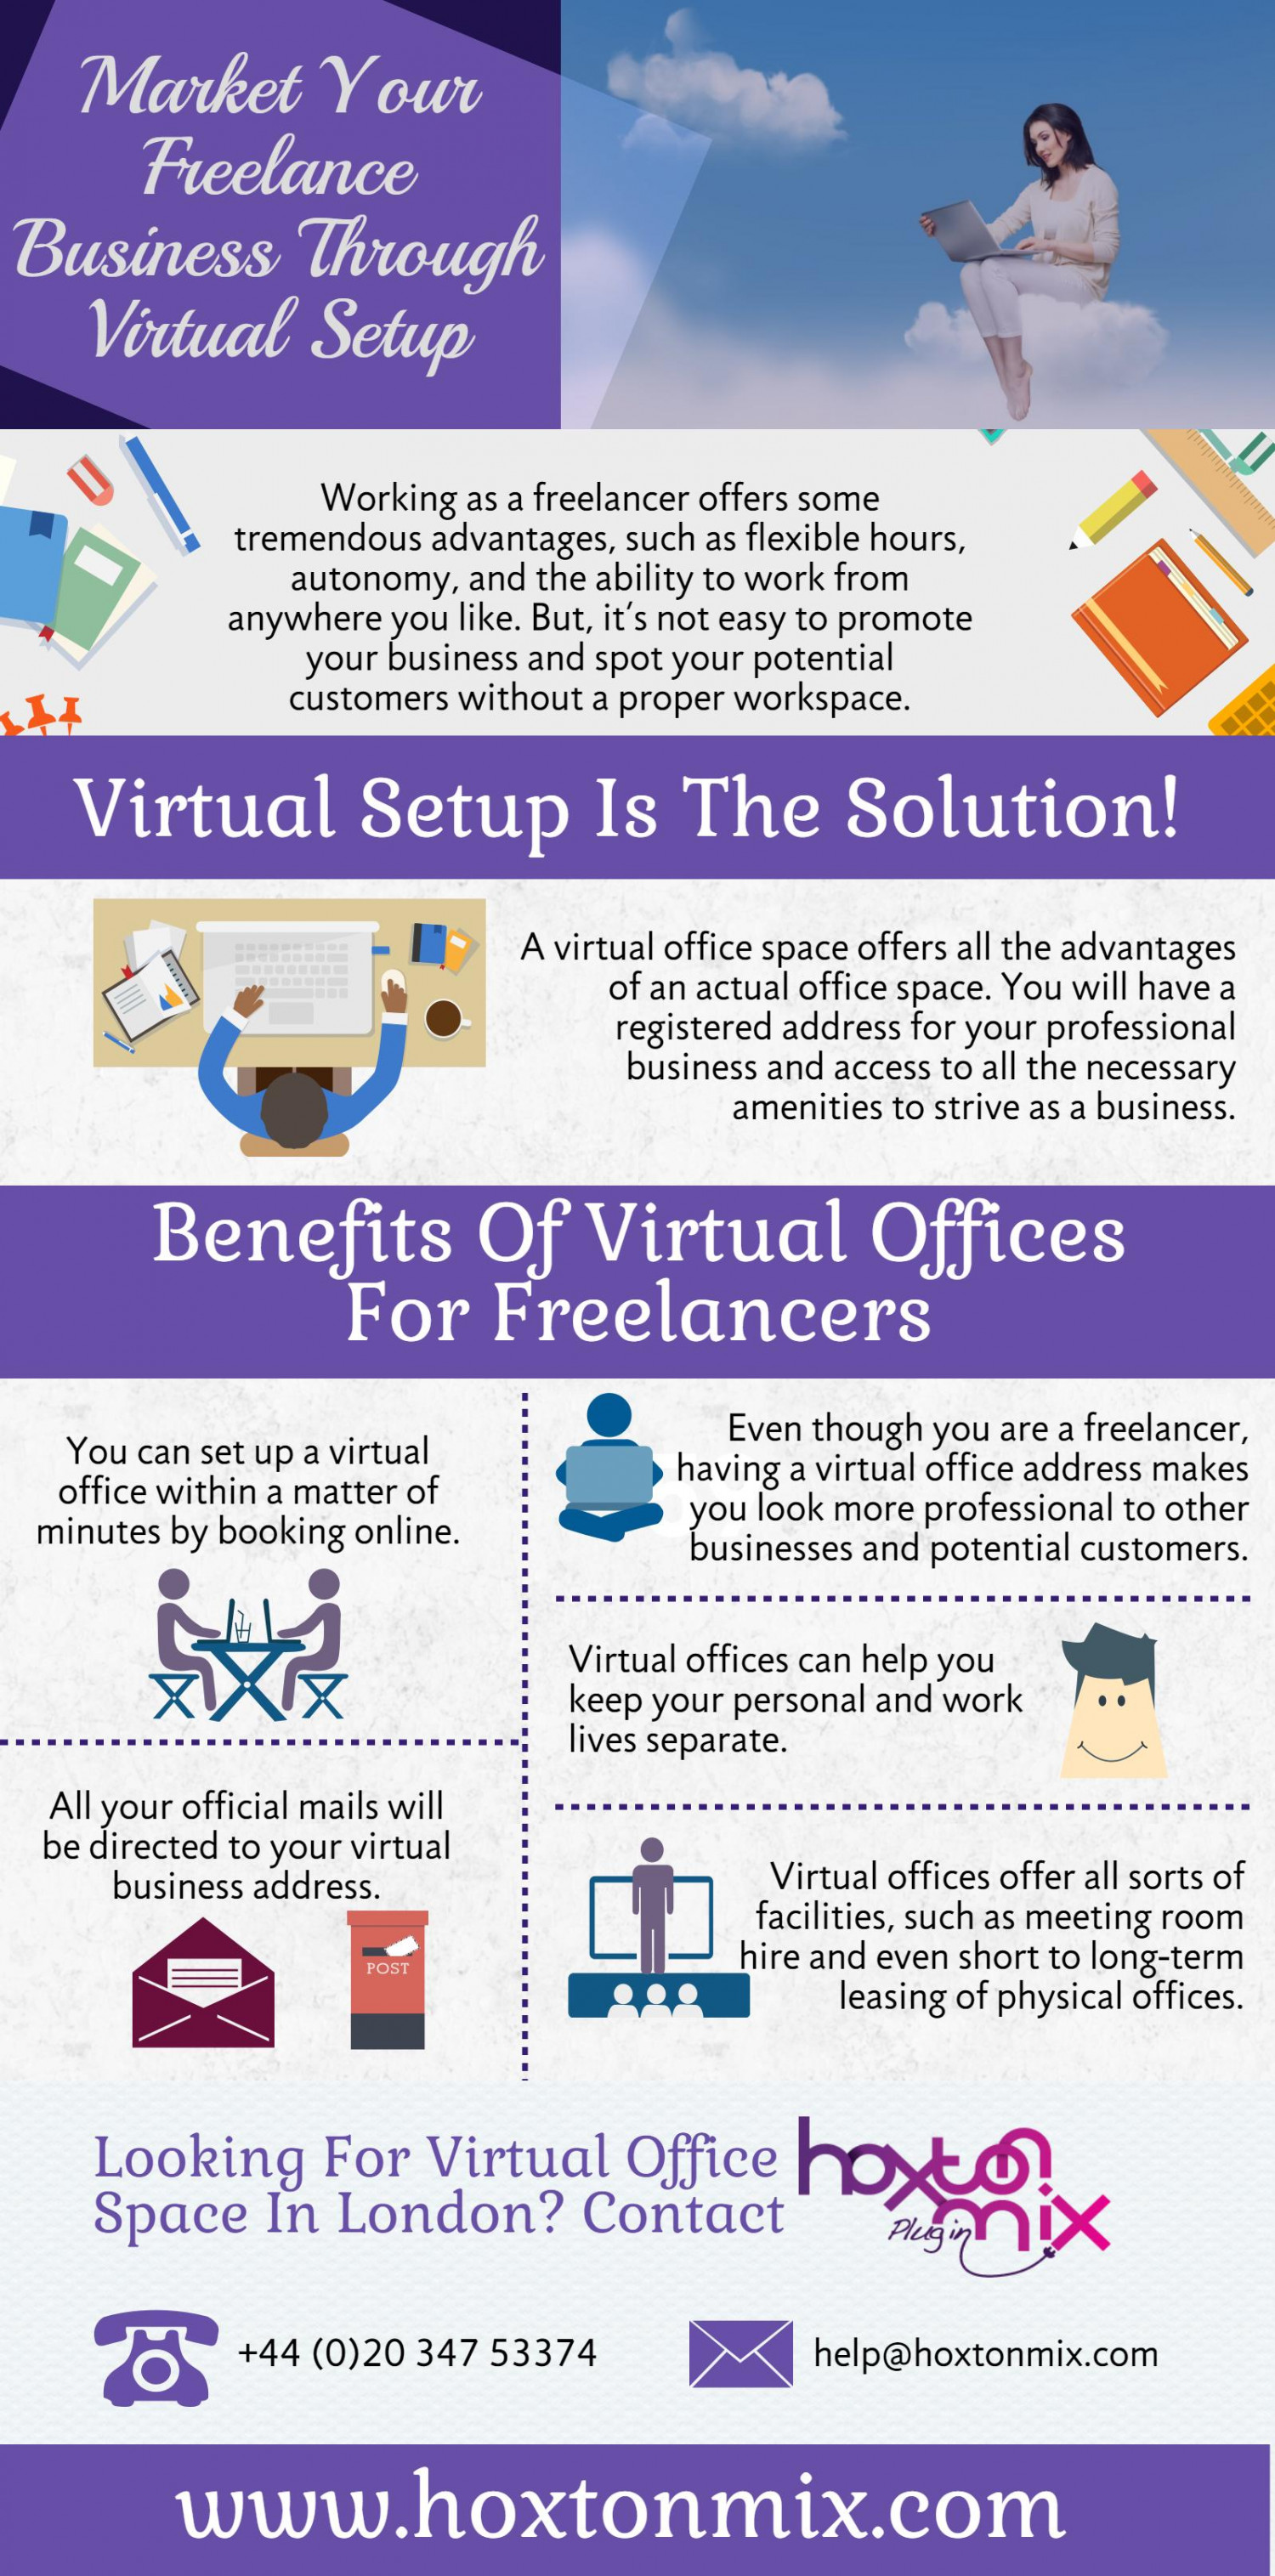 Virtual Assistant | Virtual Office Support - Hoxtonmix com | Visual ly